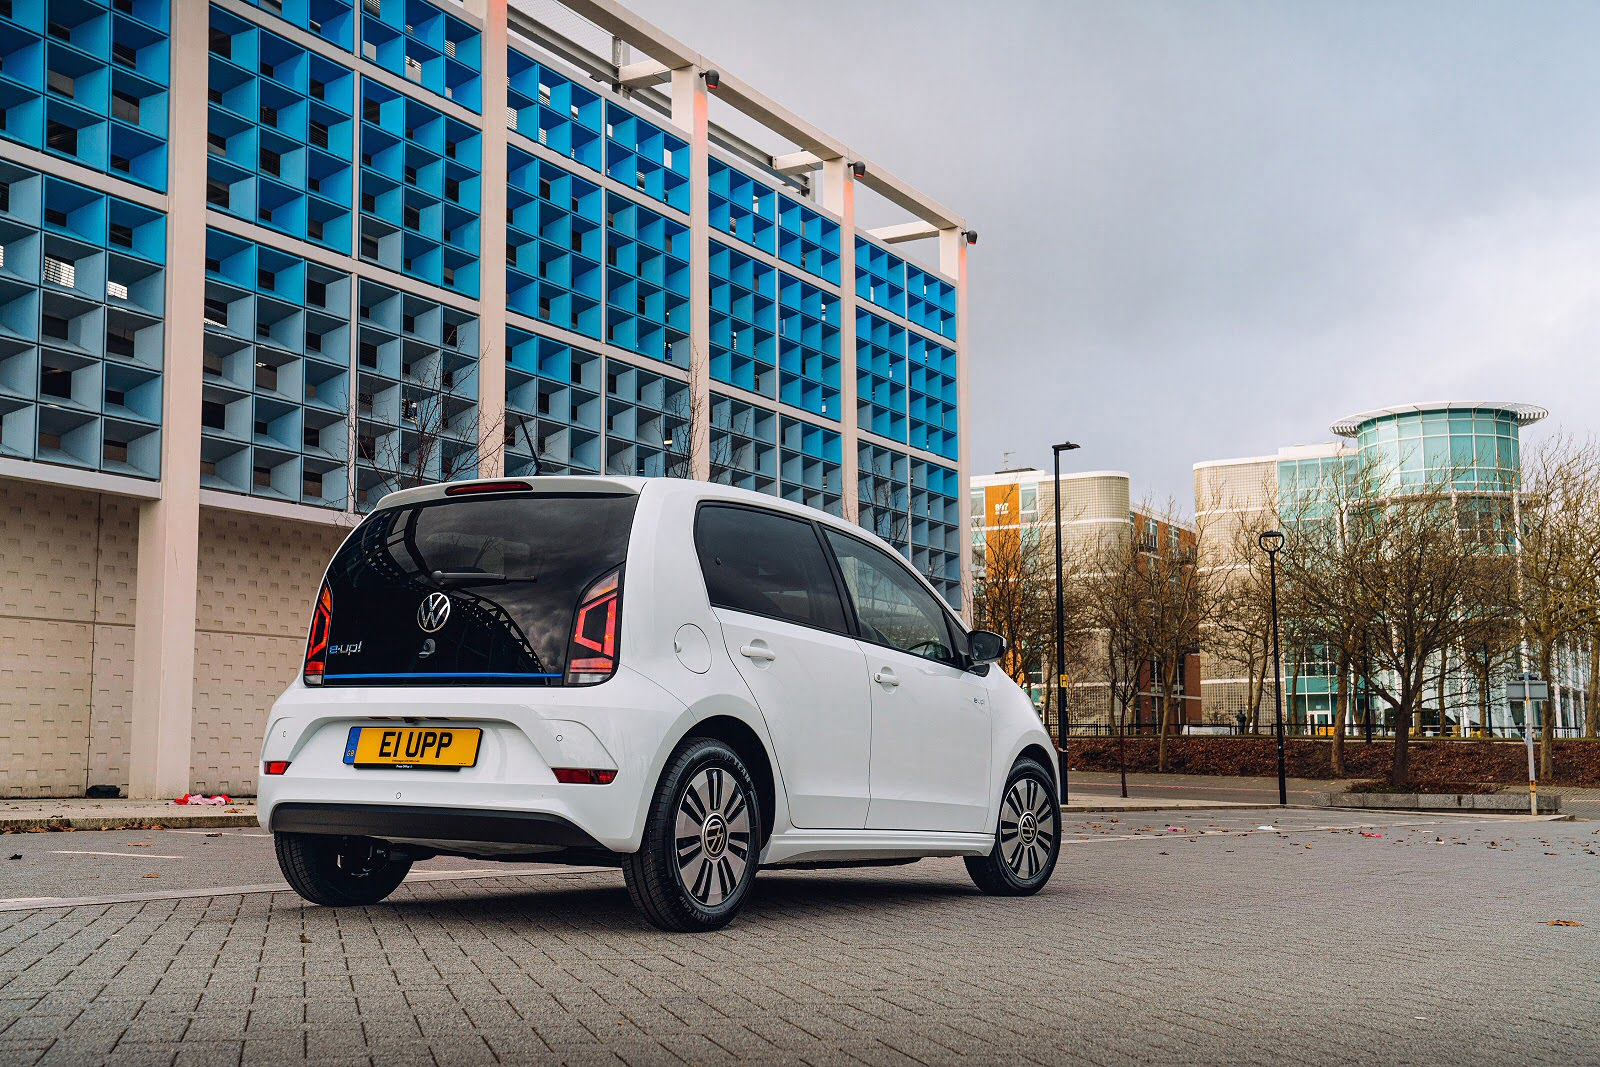 up_electric_hatchback_98164.jpg - 60kW E-Up 32kWh 5dr Auto